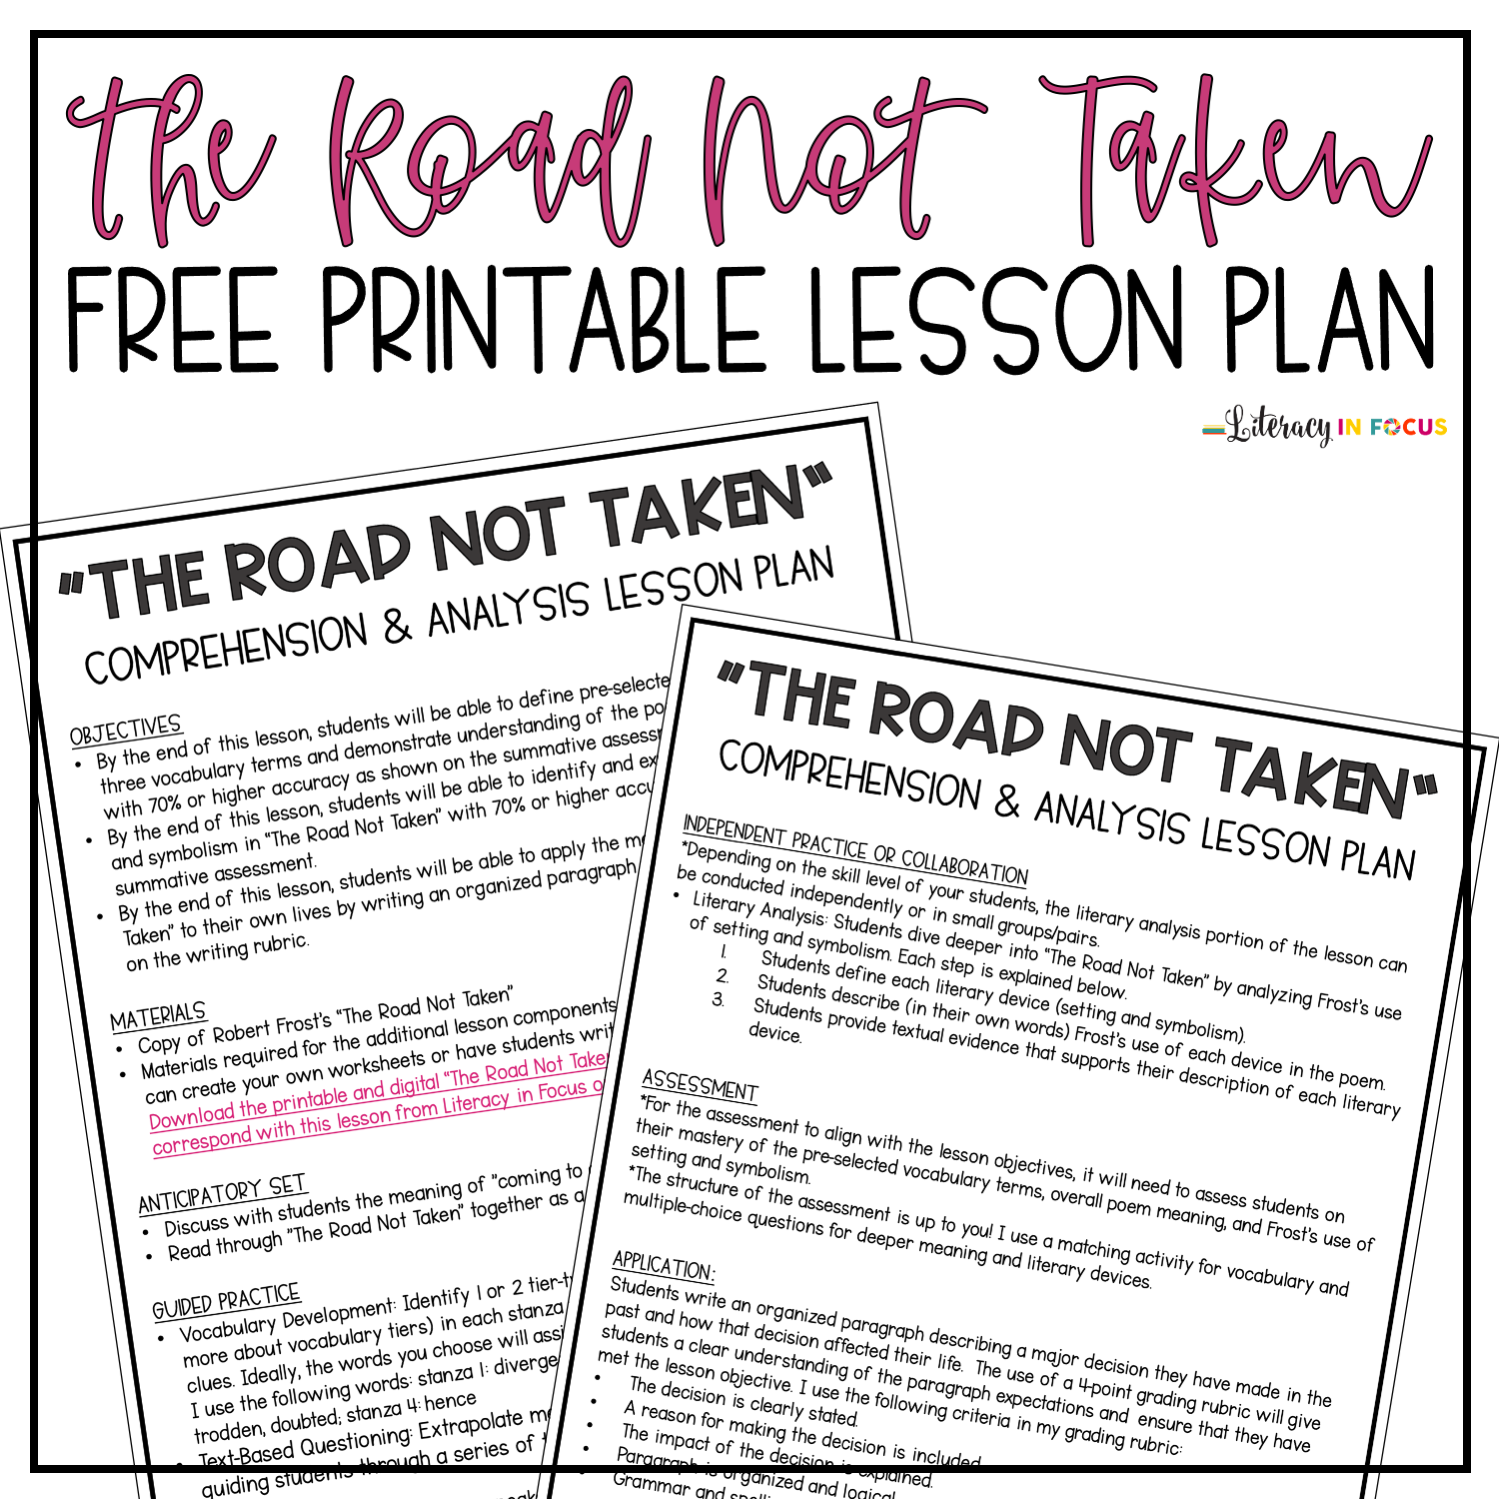 Robert Frost S The Road Not Taken Lesson Plan Pdf Literacy In Focus Video shows what poem means. the road not taken lesson plan pdf